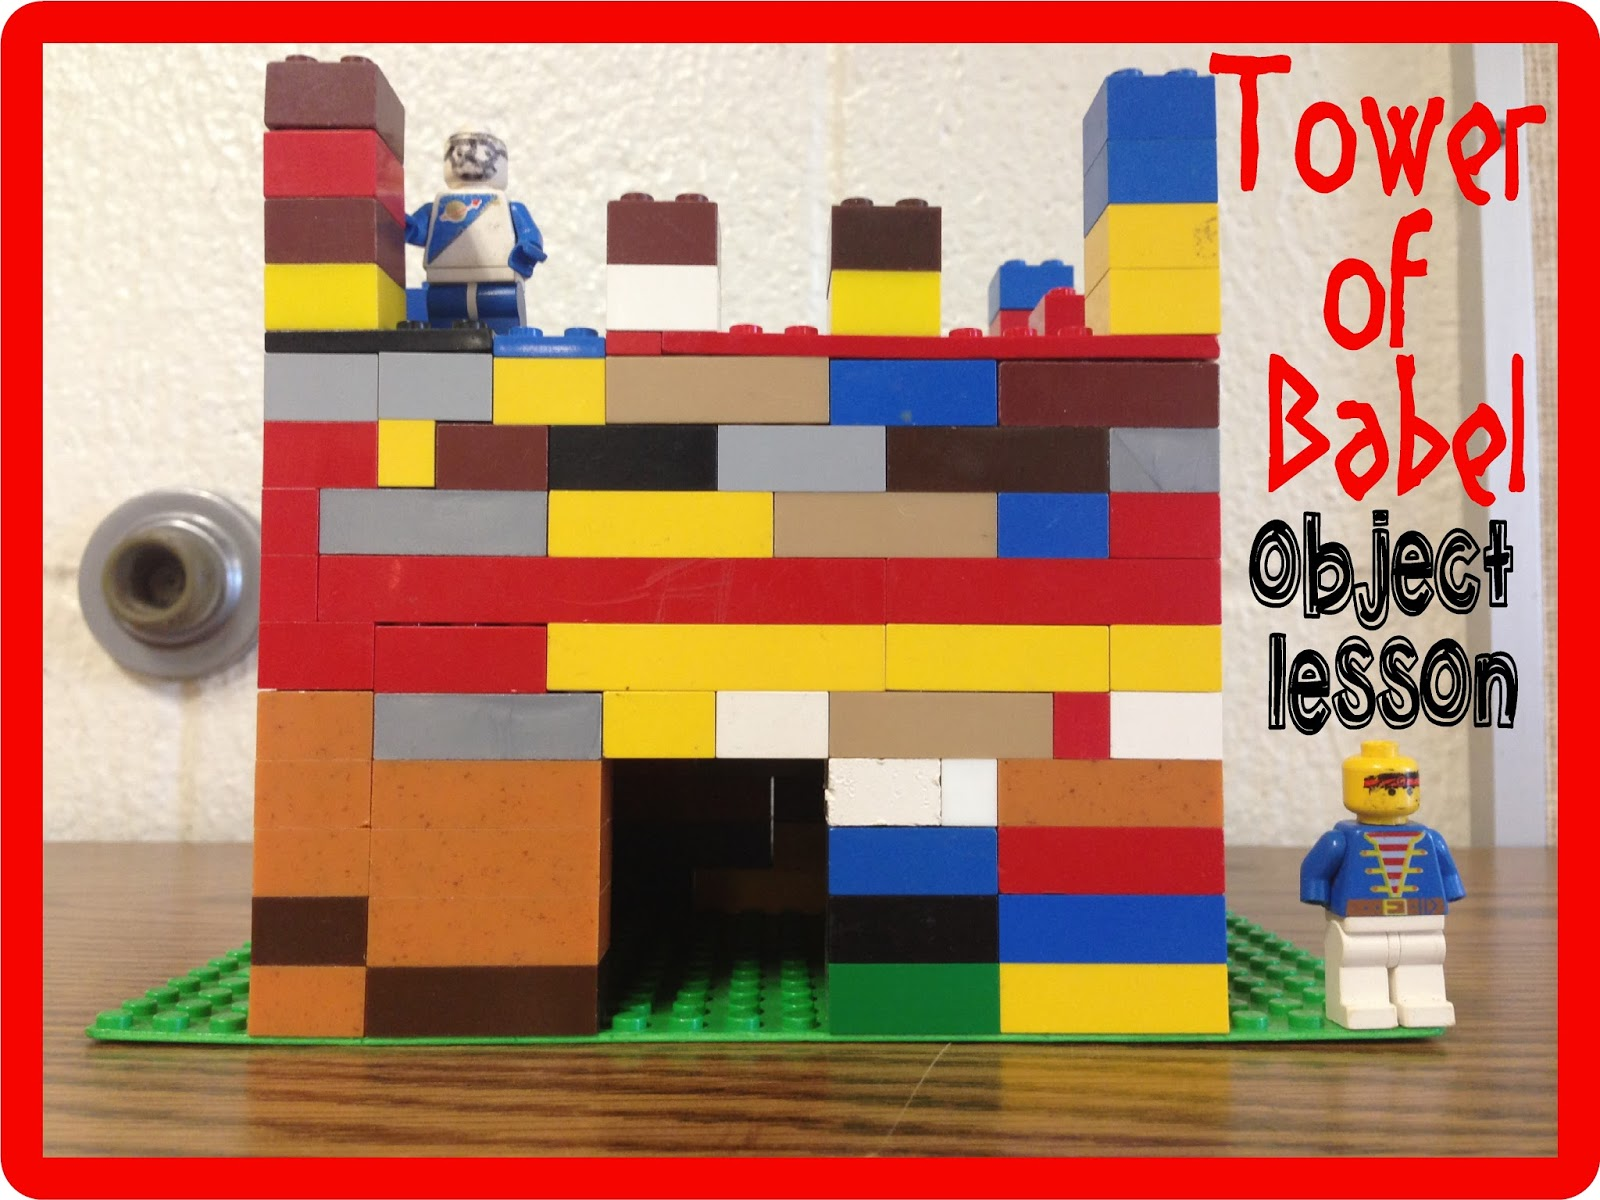 HollysHome - Church Fun: Old Testament Tower of Babel Object